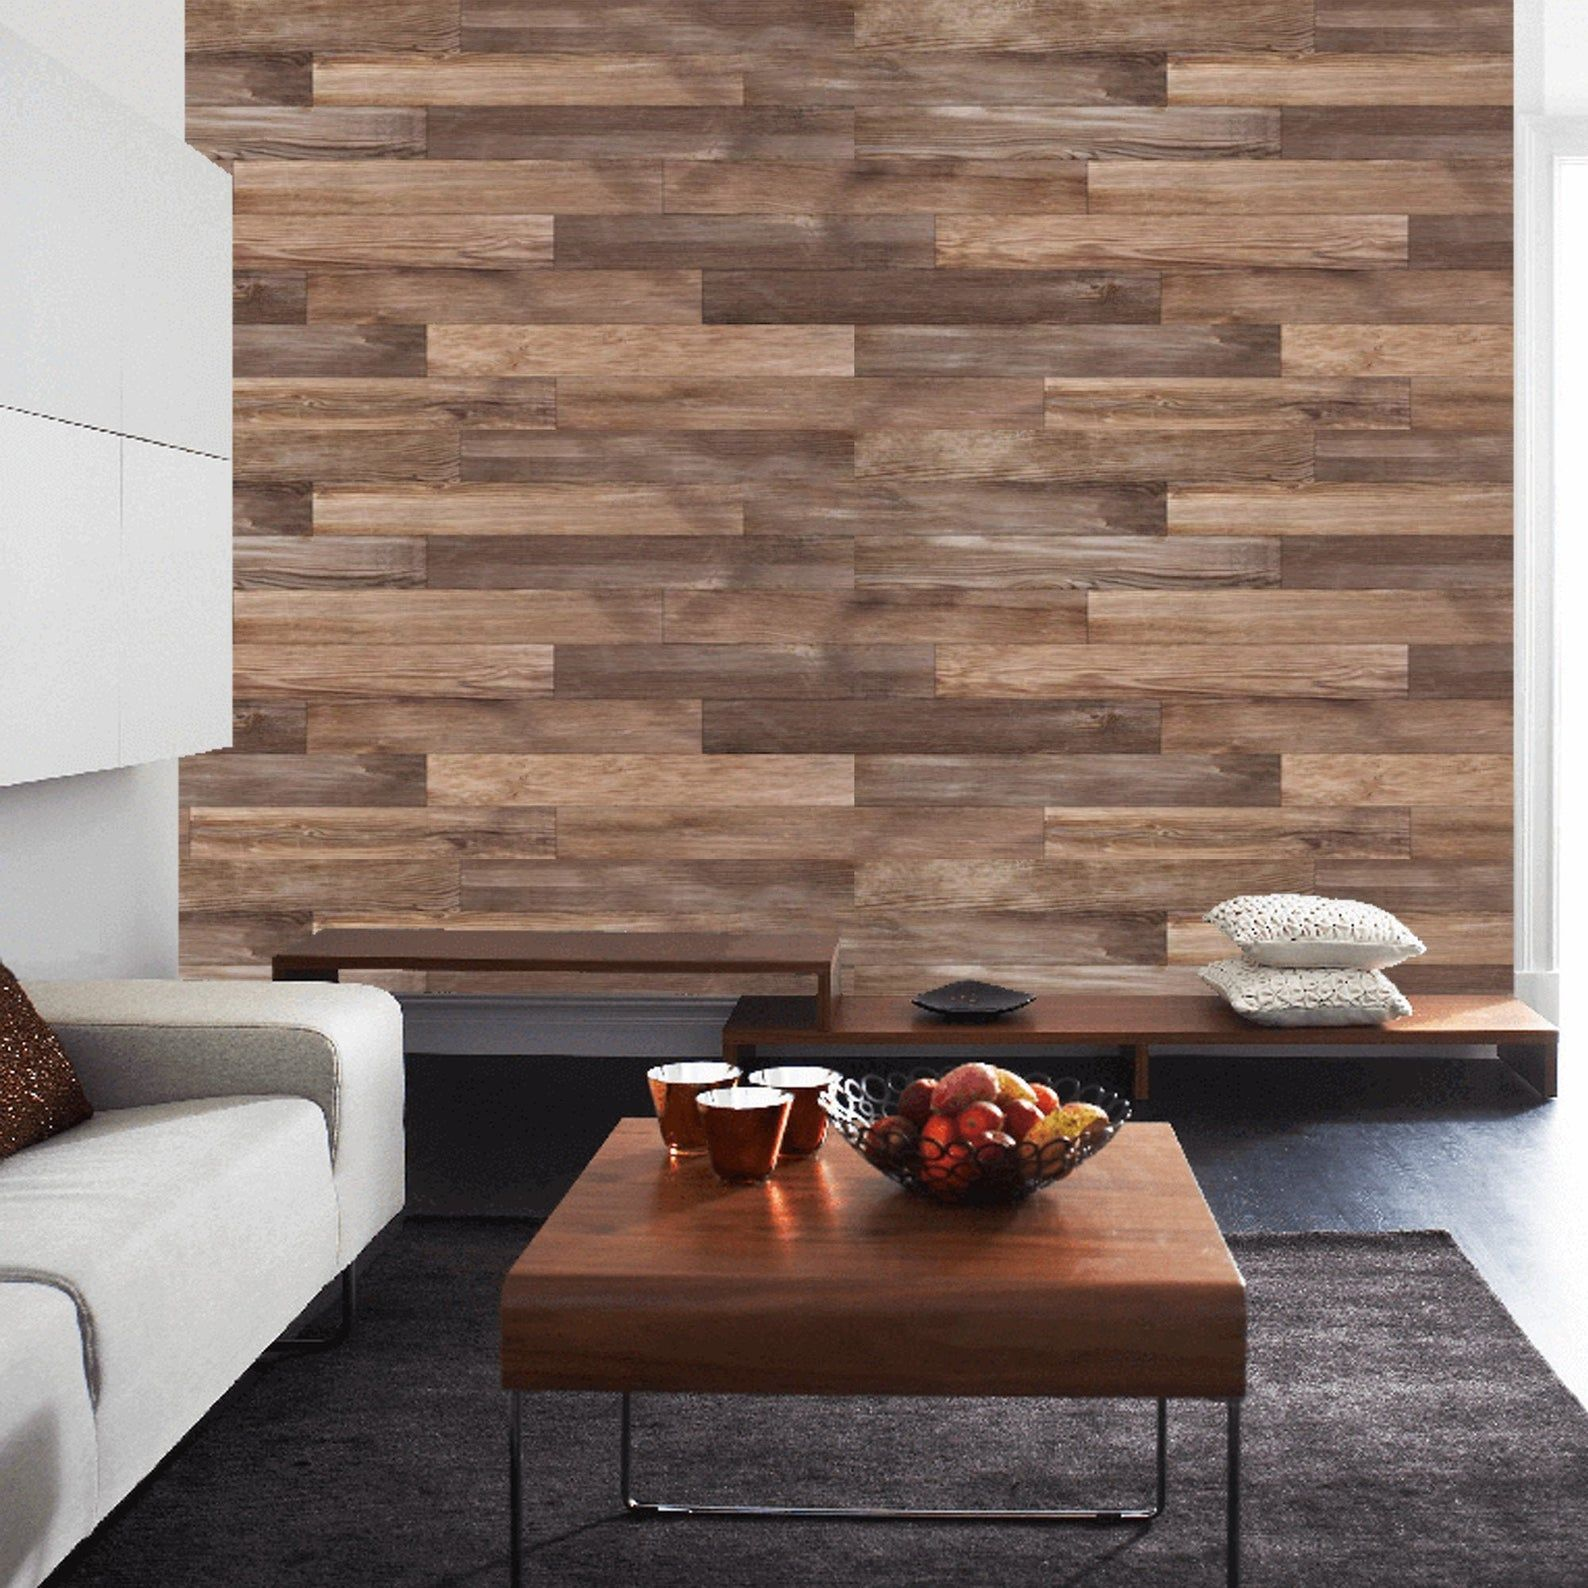 Peel And Stick Recycled Wood Wallpaper Removable Vintage Wood Etsy Wood Wallpaper Stick On Wood Wall Wood Walls Bedroom